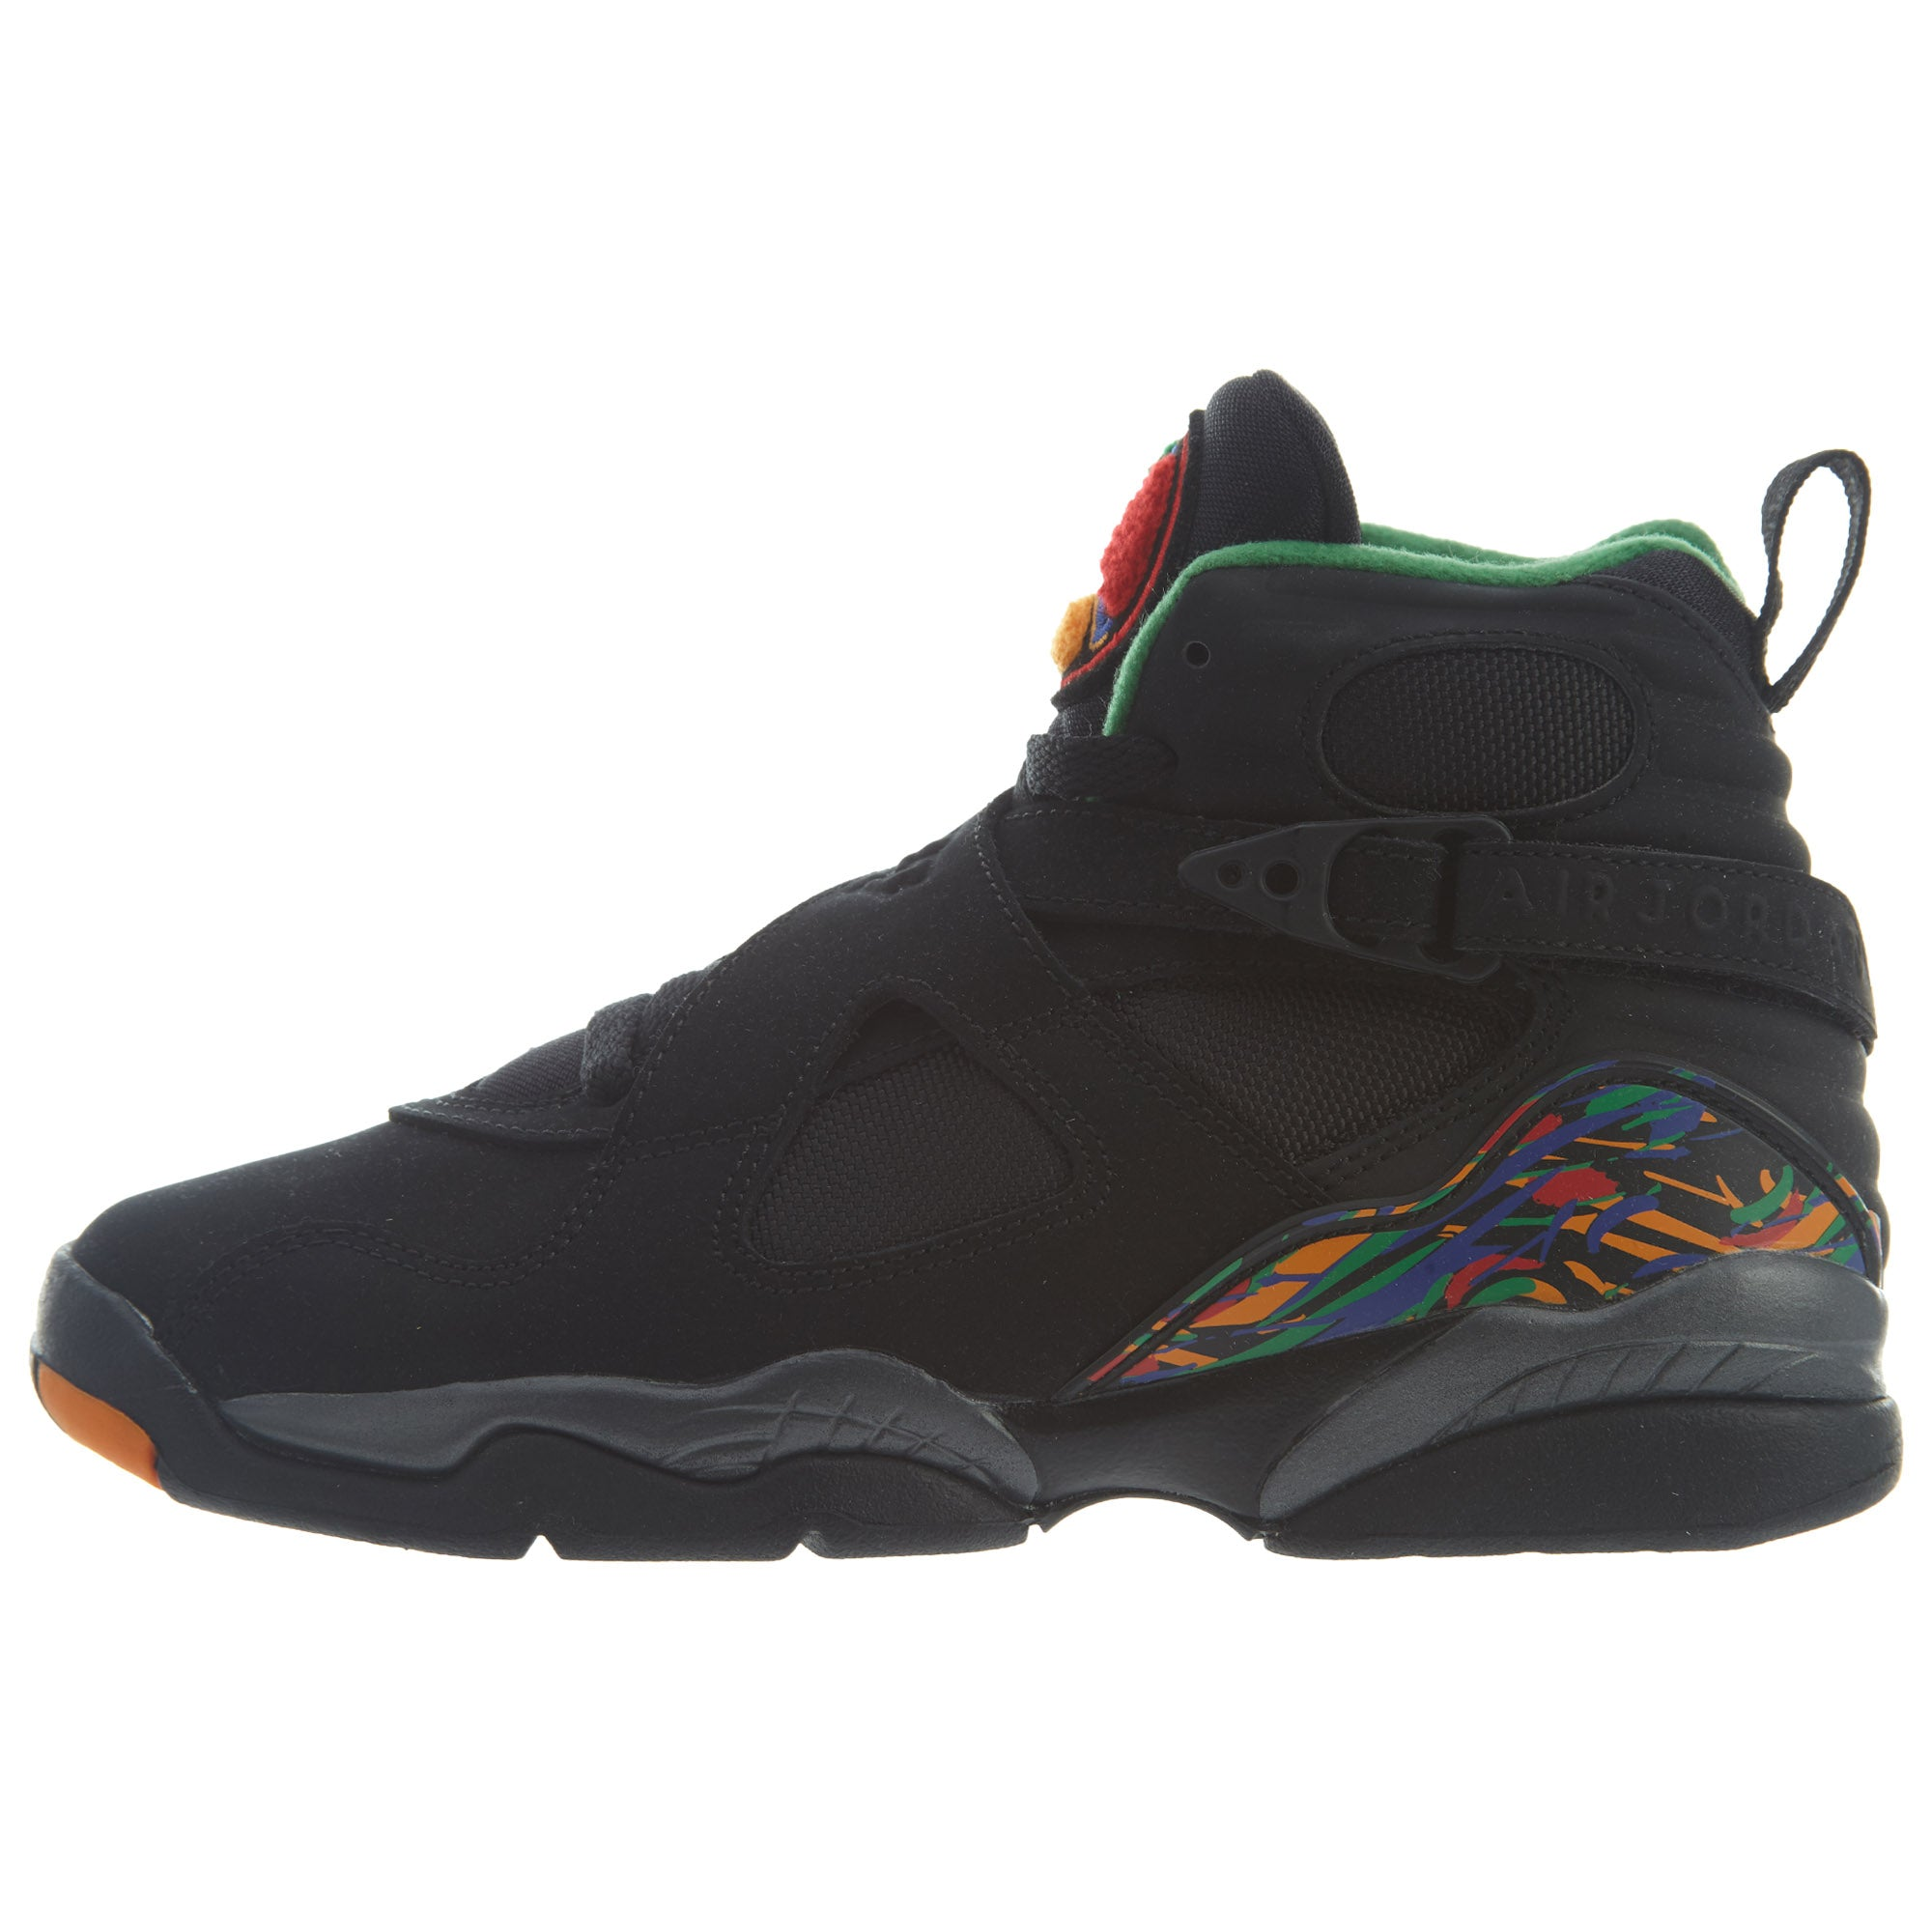 on sale 28b13 05ec0 Jordan 8 Retro Big Kids Style : 305368-004 – TheEagleShoes